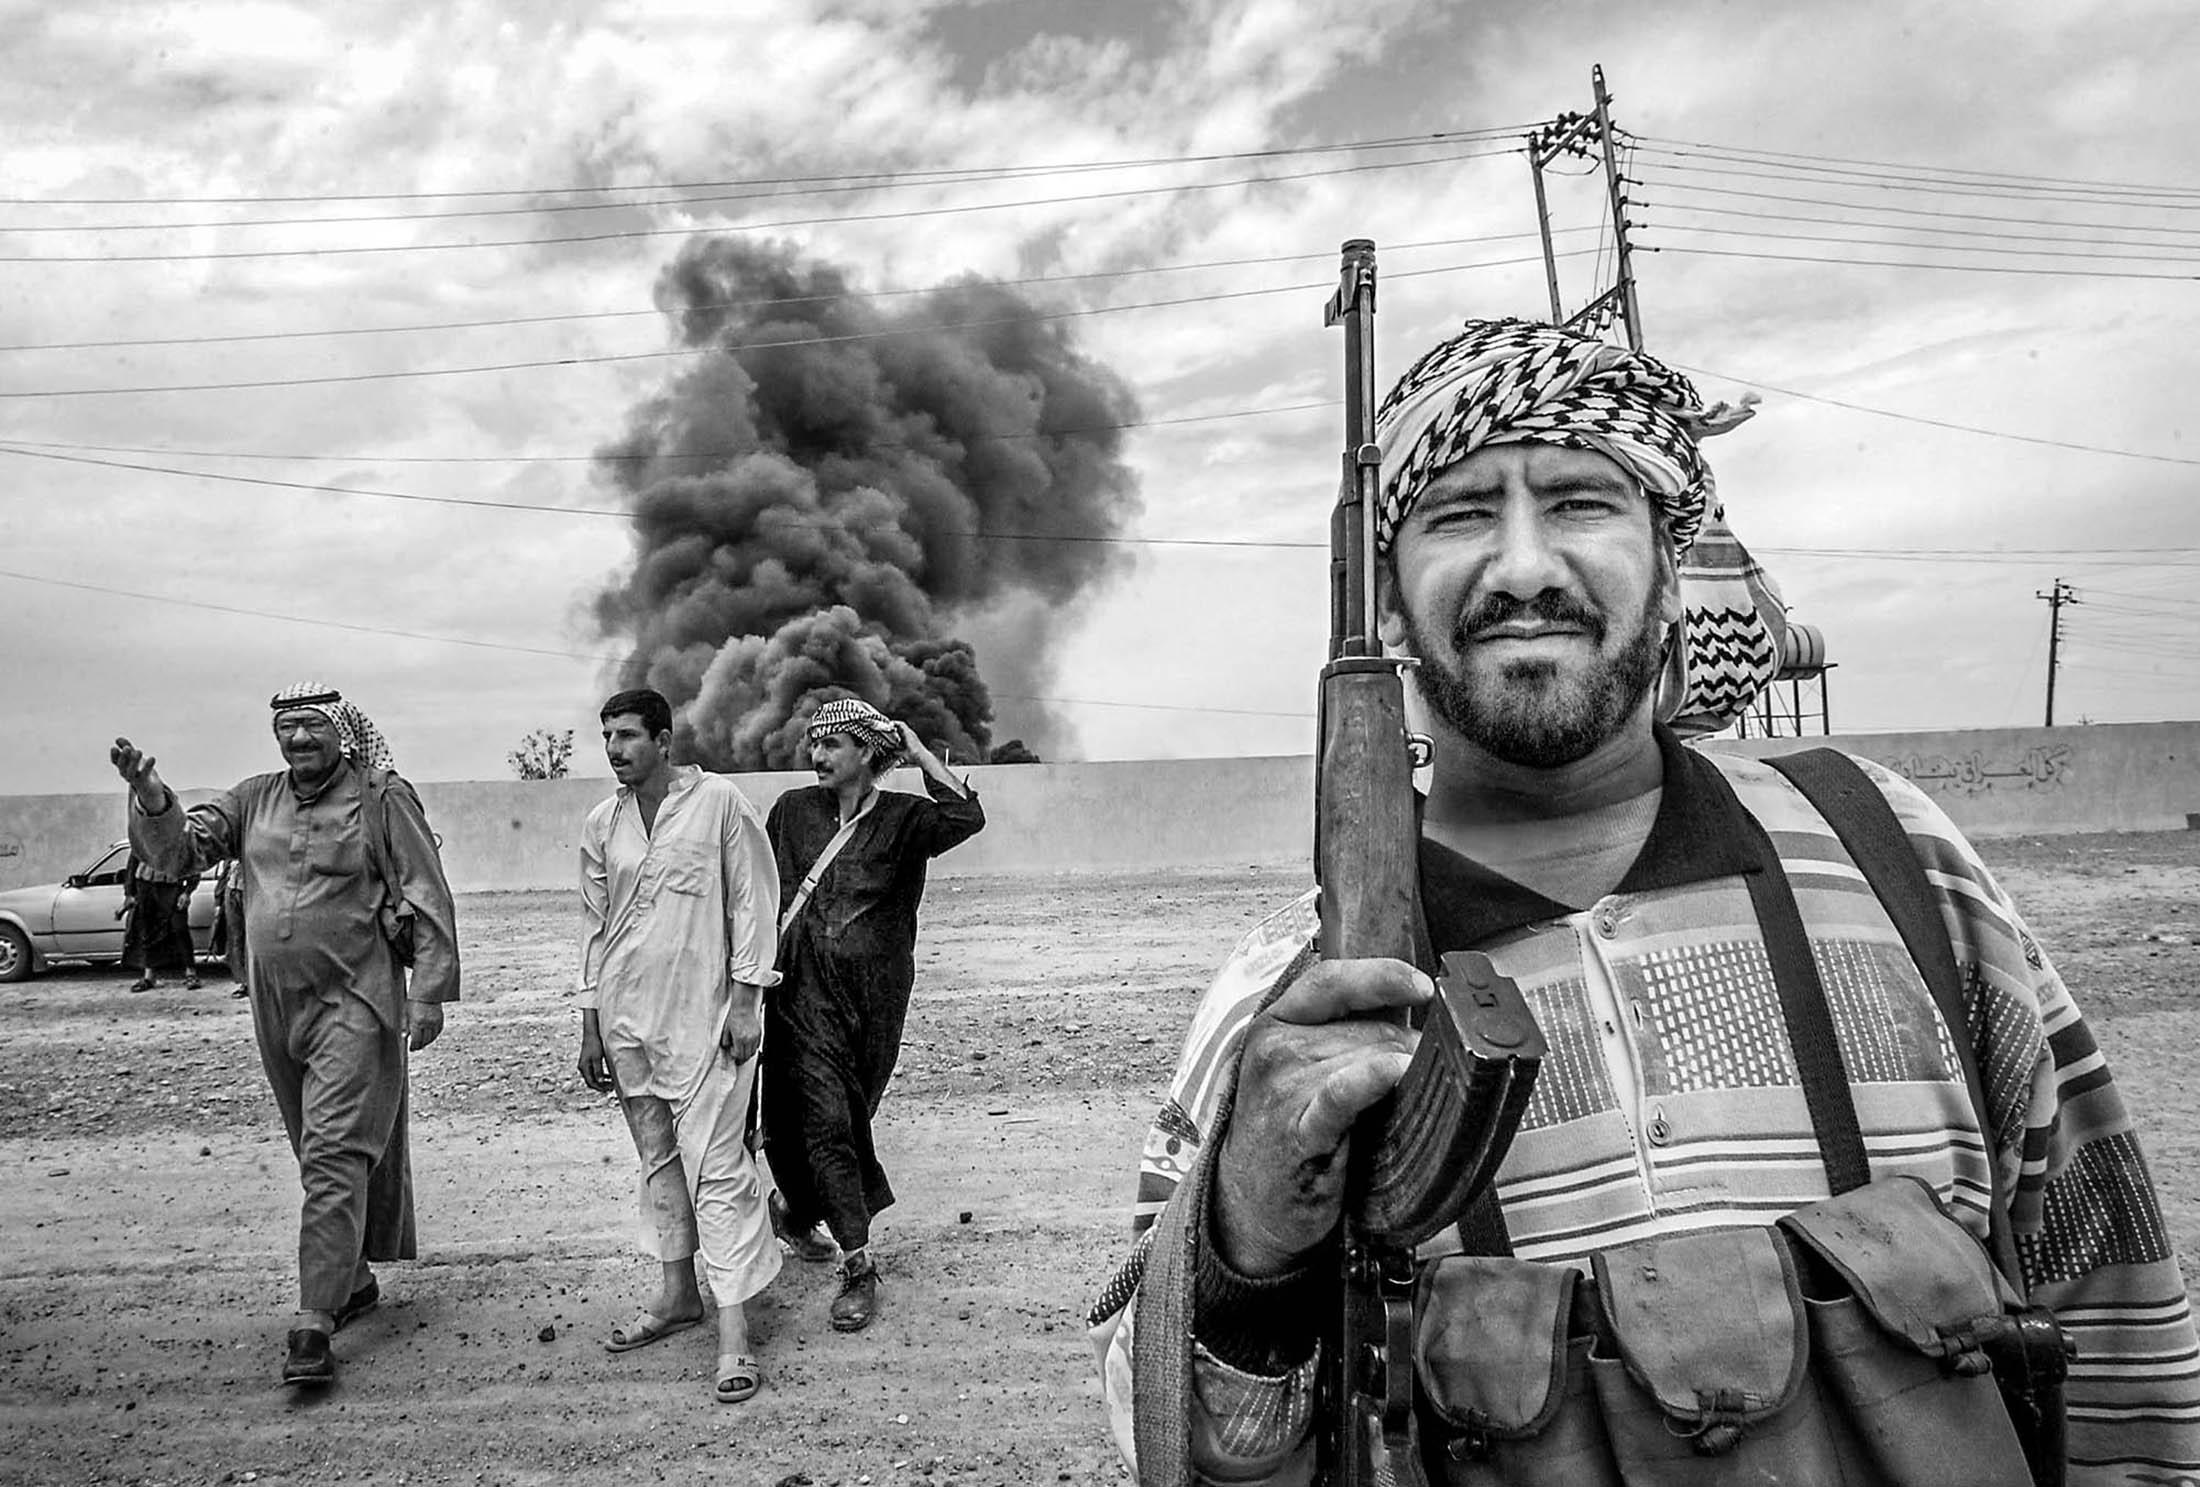 As the forces of Saddam Hussein retreat, Arab villagers near Kirkuk armed themselves, afraid of retaliation majority Kurds. Under Saddam, Arabs population were intentionally resettled in order to control Kirkuk, the important city with a large oil field.